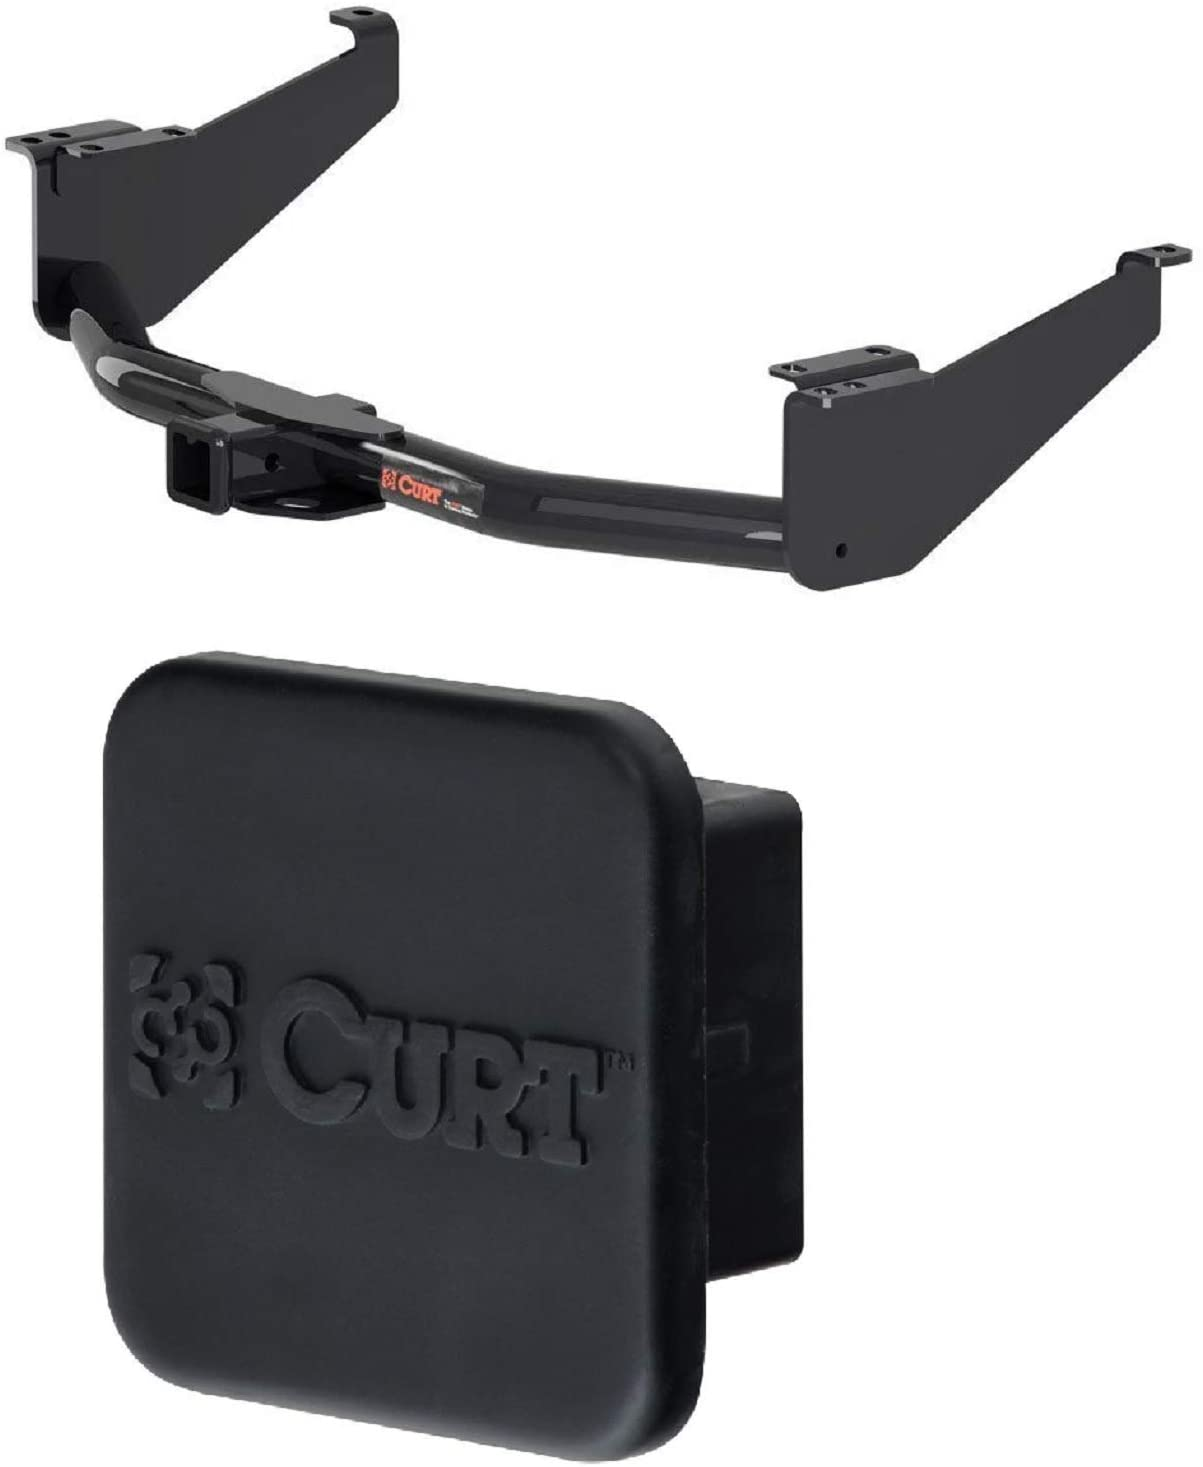 Curt 13304 22272 Class 3 Trailer Hitch with 2 Inch Receiver and 2 Inch Rubber Hitch Tube Cover Bundle for 17-20 Nissan Titan